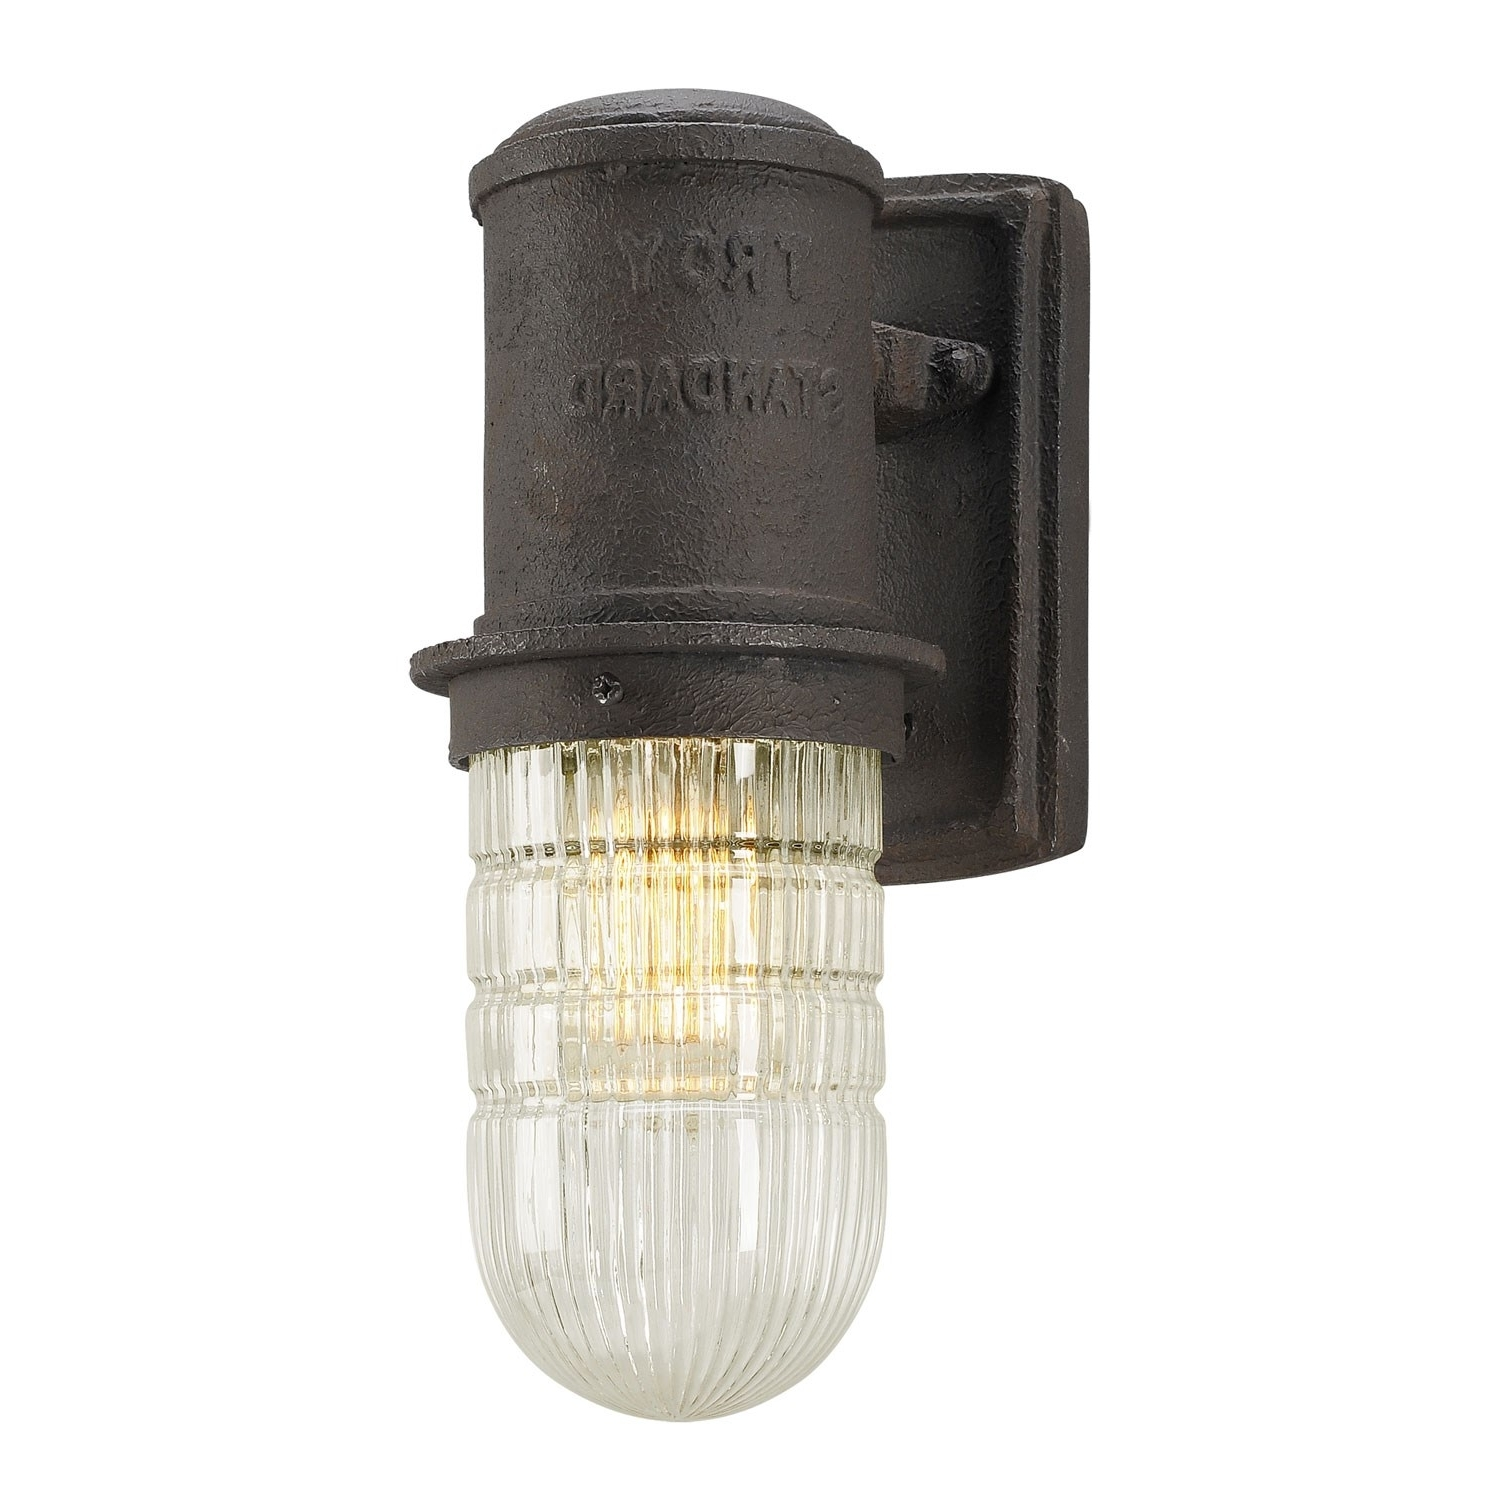 Troy Bf4341 Dock Street 4 1 2 W 1 Light Outdoor Wall Sconce In Regarding Newest Troy Lighting Outdoor Wall Sconces (View 15 of 20)